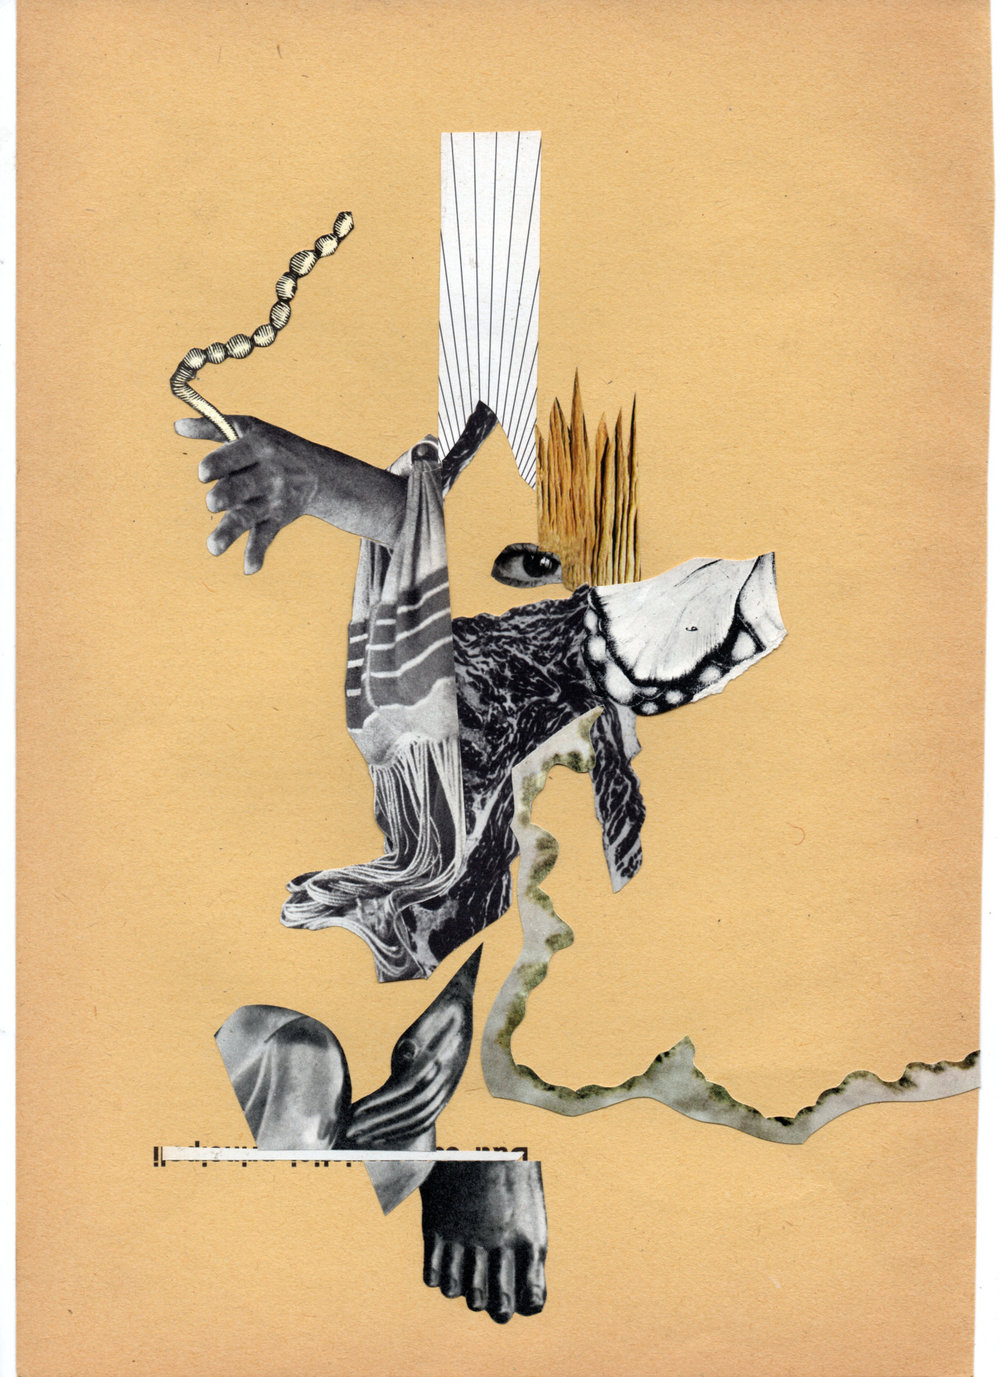 6 Hands Collage, created by Bill Noir & Emidio IsHere & Jonathan Tegelaars, 2105, 23 x 30 cm